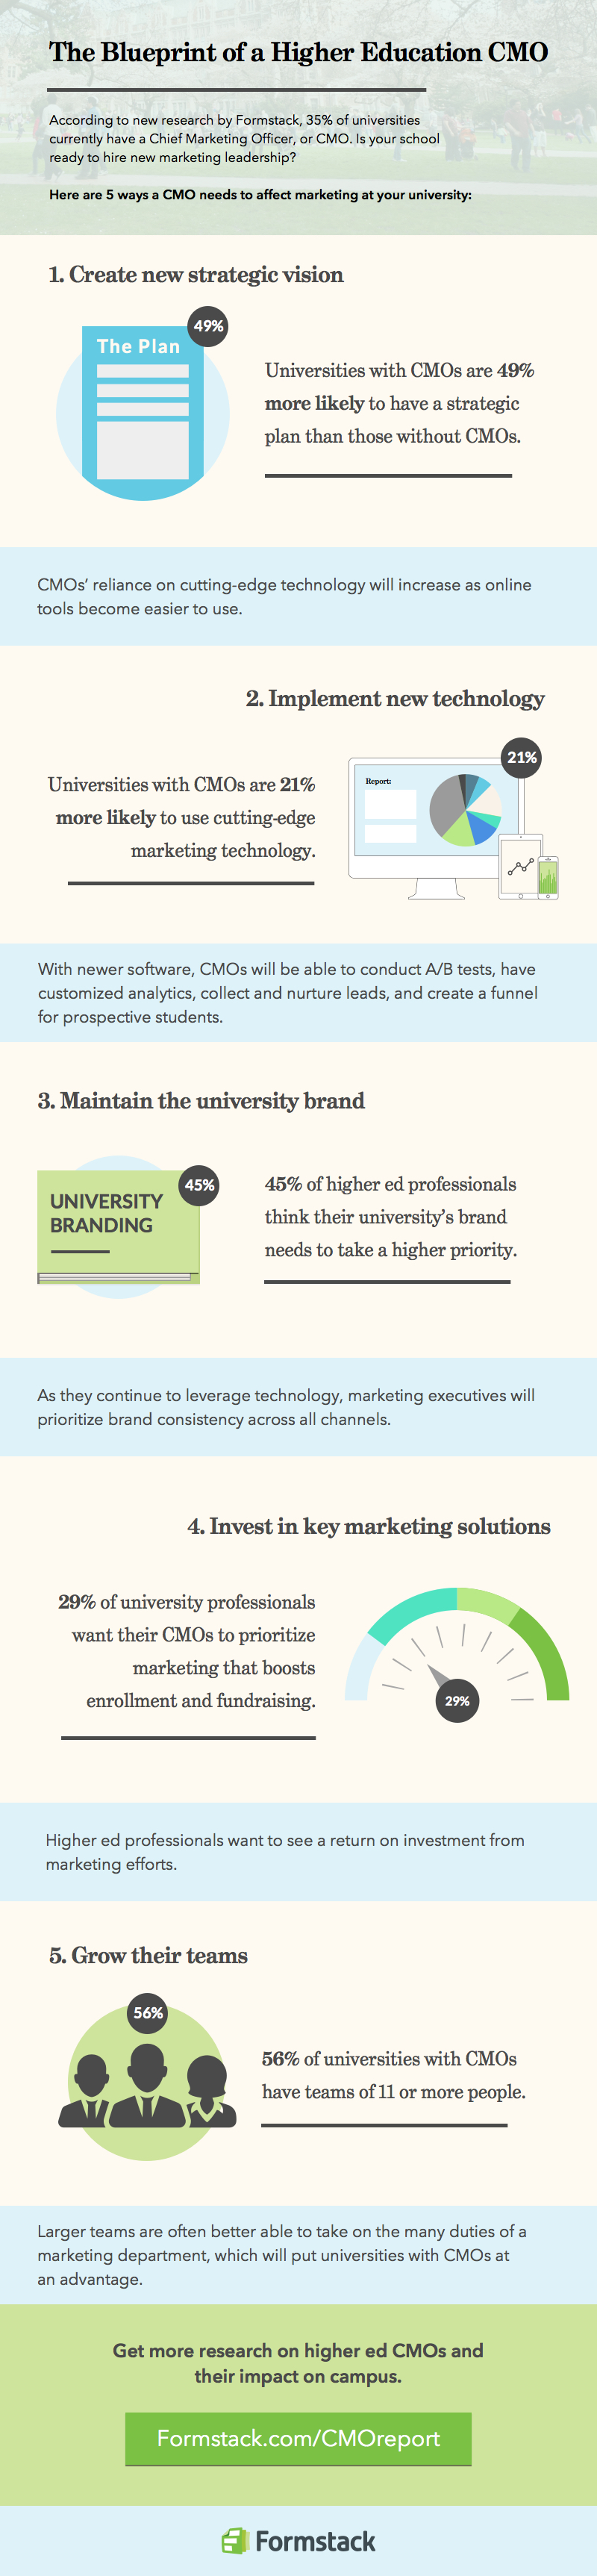 University Branding: How Colleges Utilize Their Brand (and How You Can Too!) image CMO Infographic Half